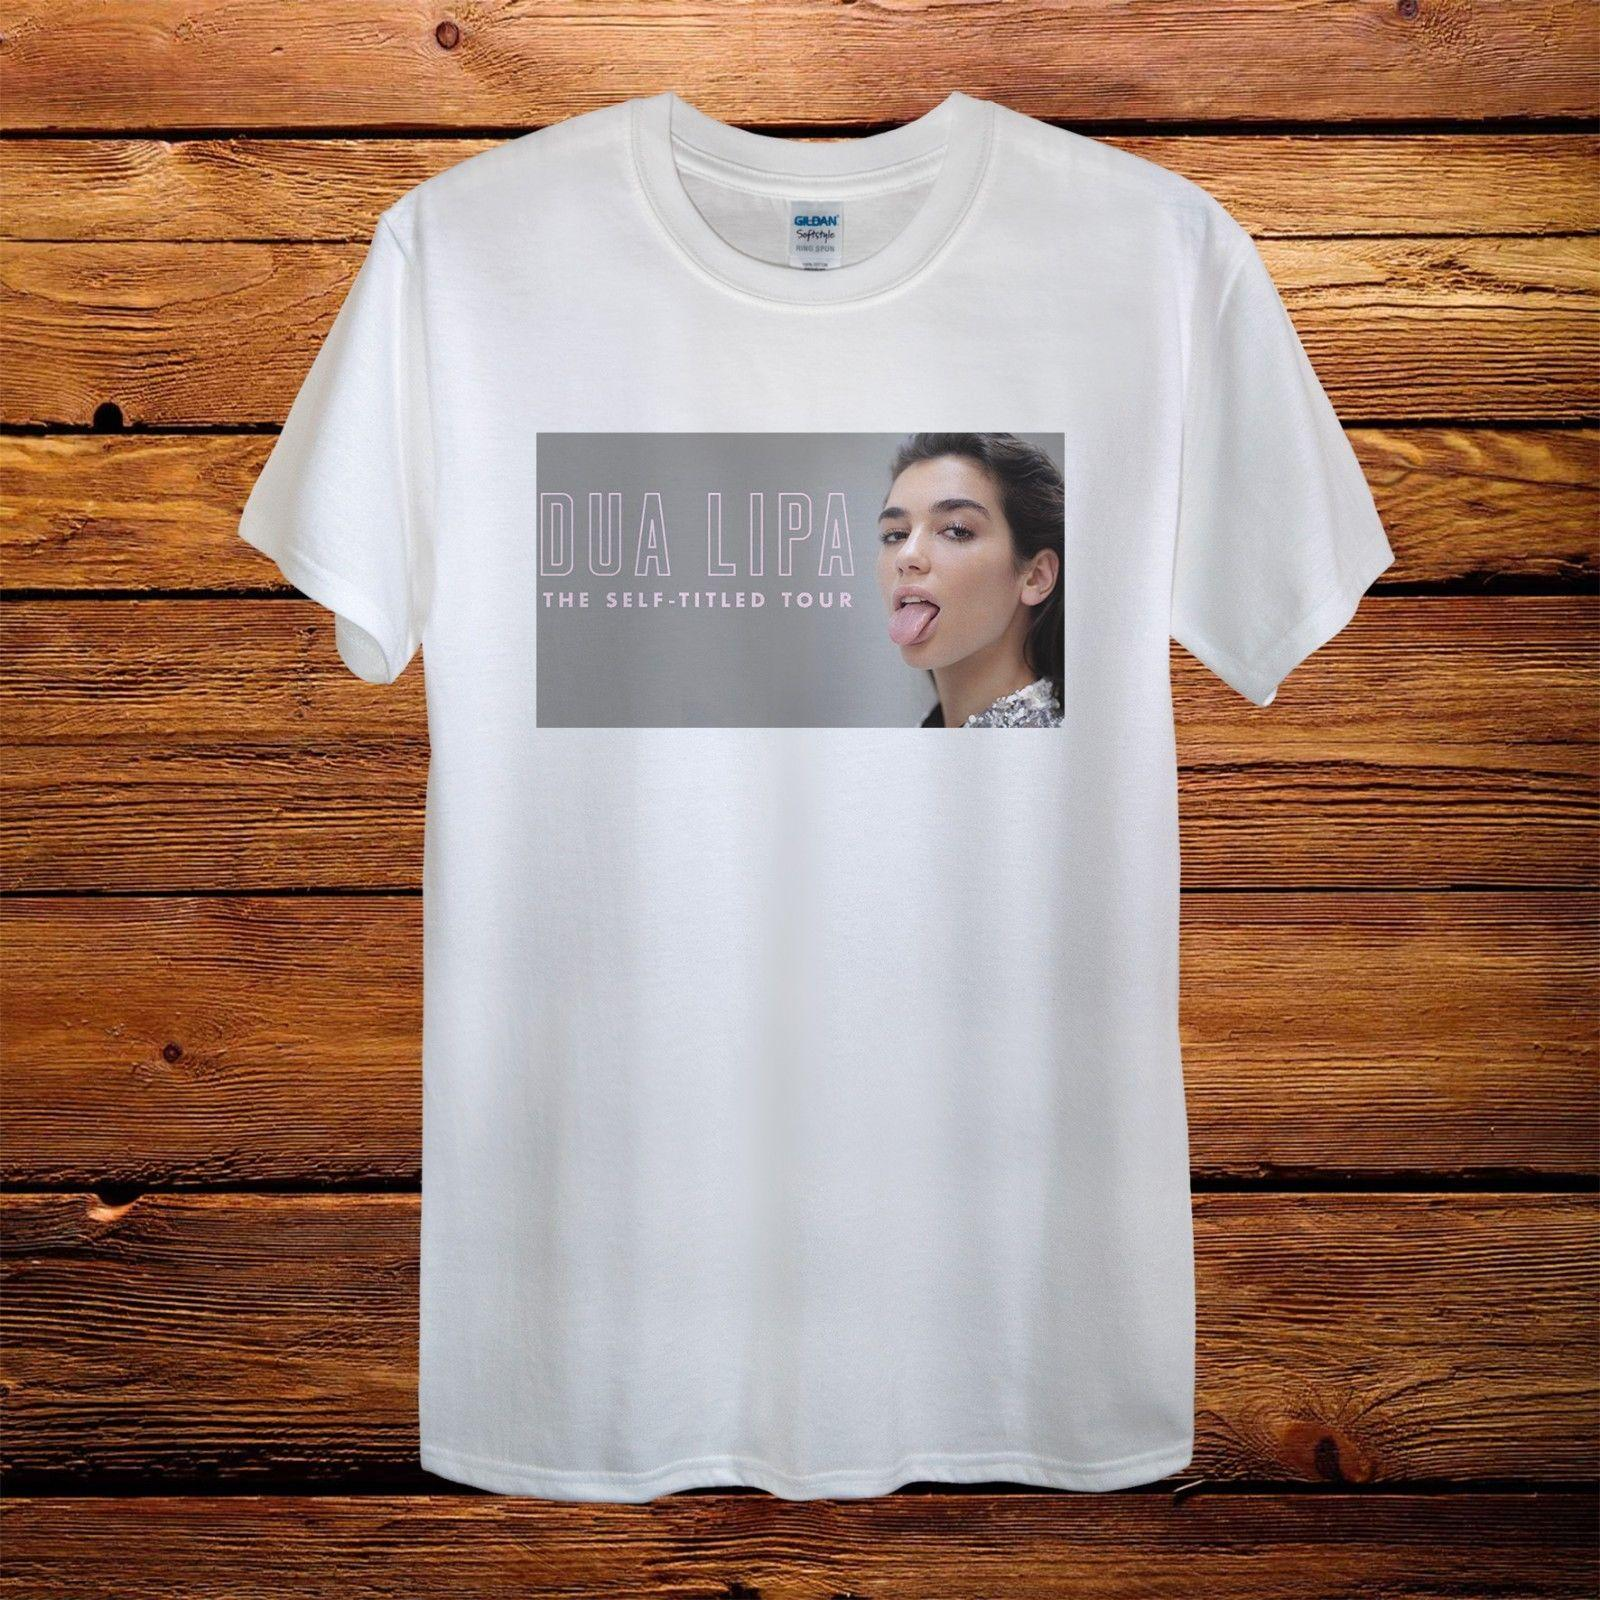 cc9bff0c Dua Lipa The Self Titled Tour Singer Gift Design T Shirt Men Funny Unisex  Casual Gift Funny Clever T Shirts Best Sites For T Shirts From Lukehappy13,  ...